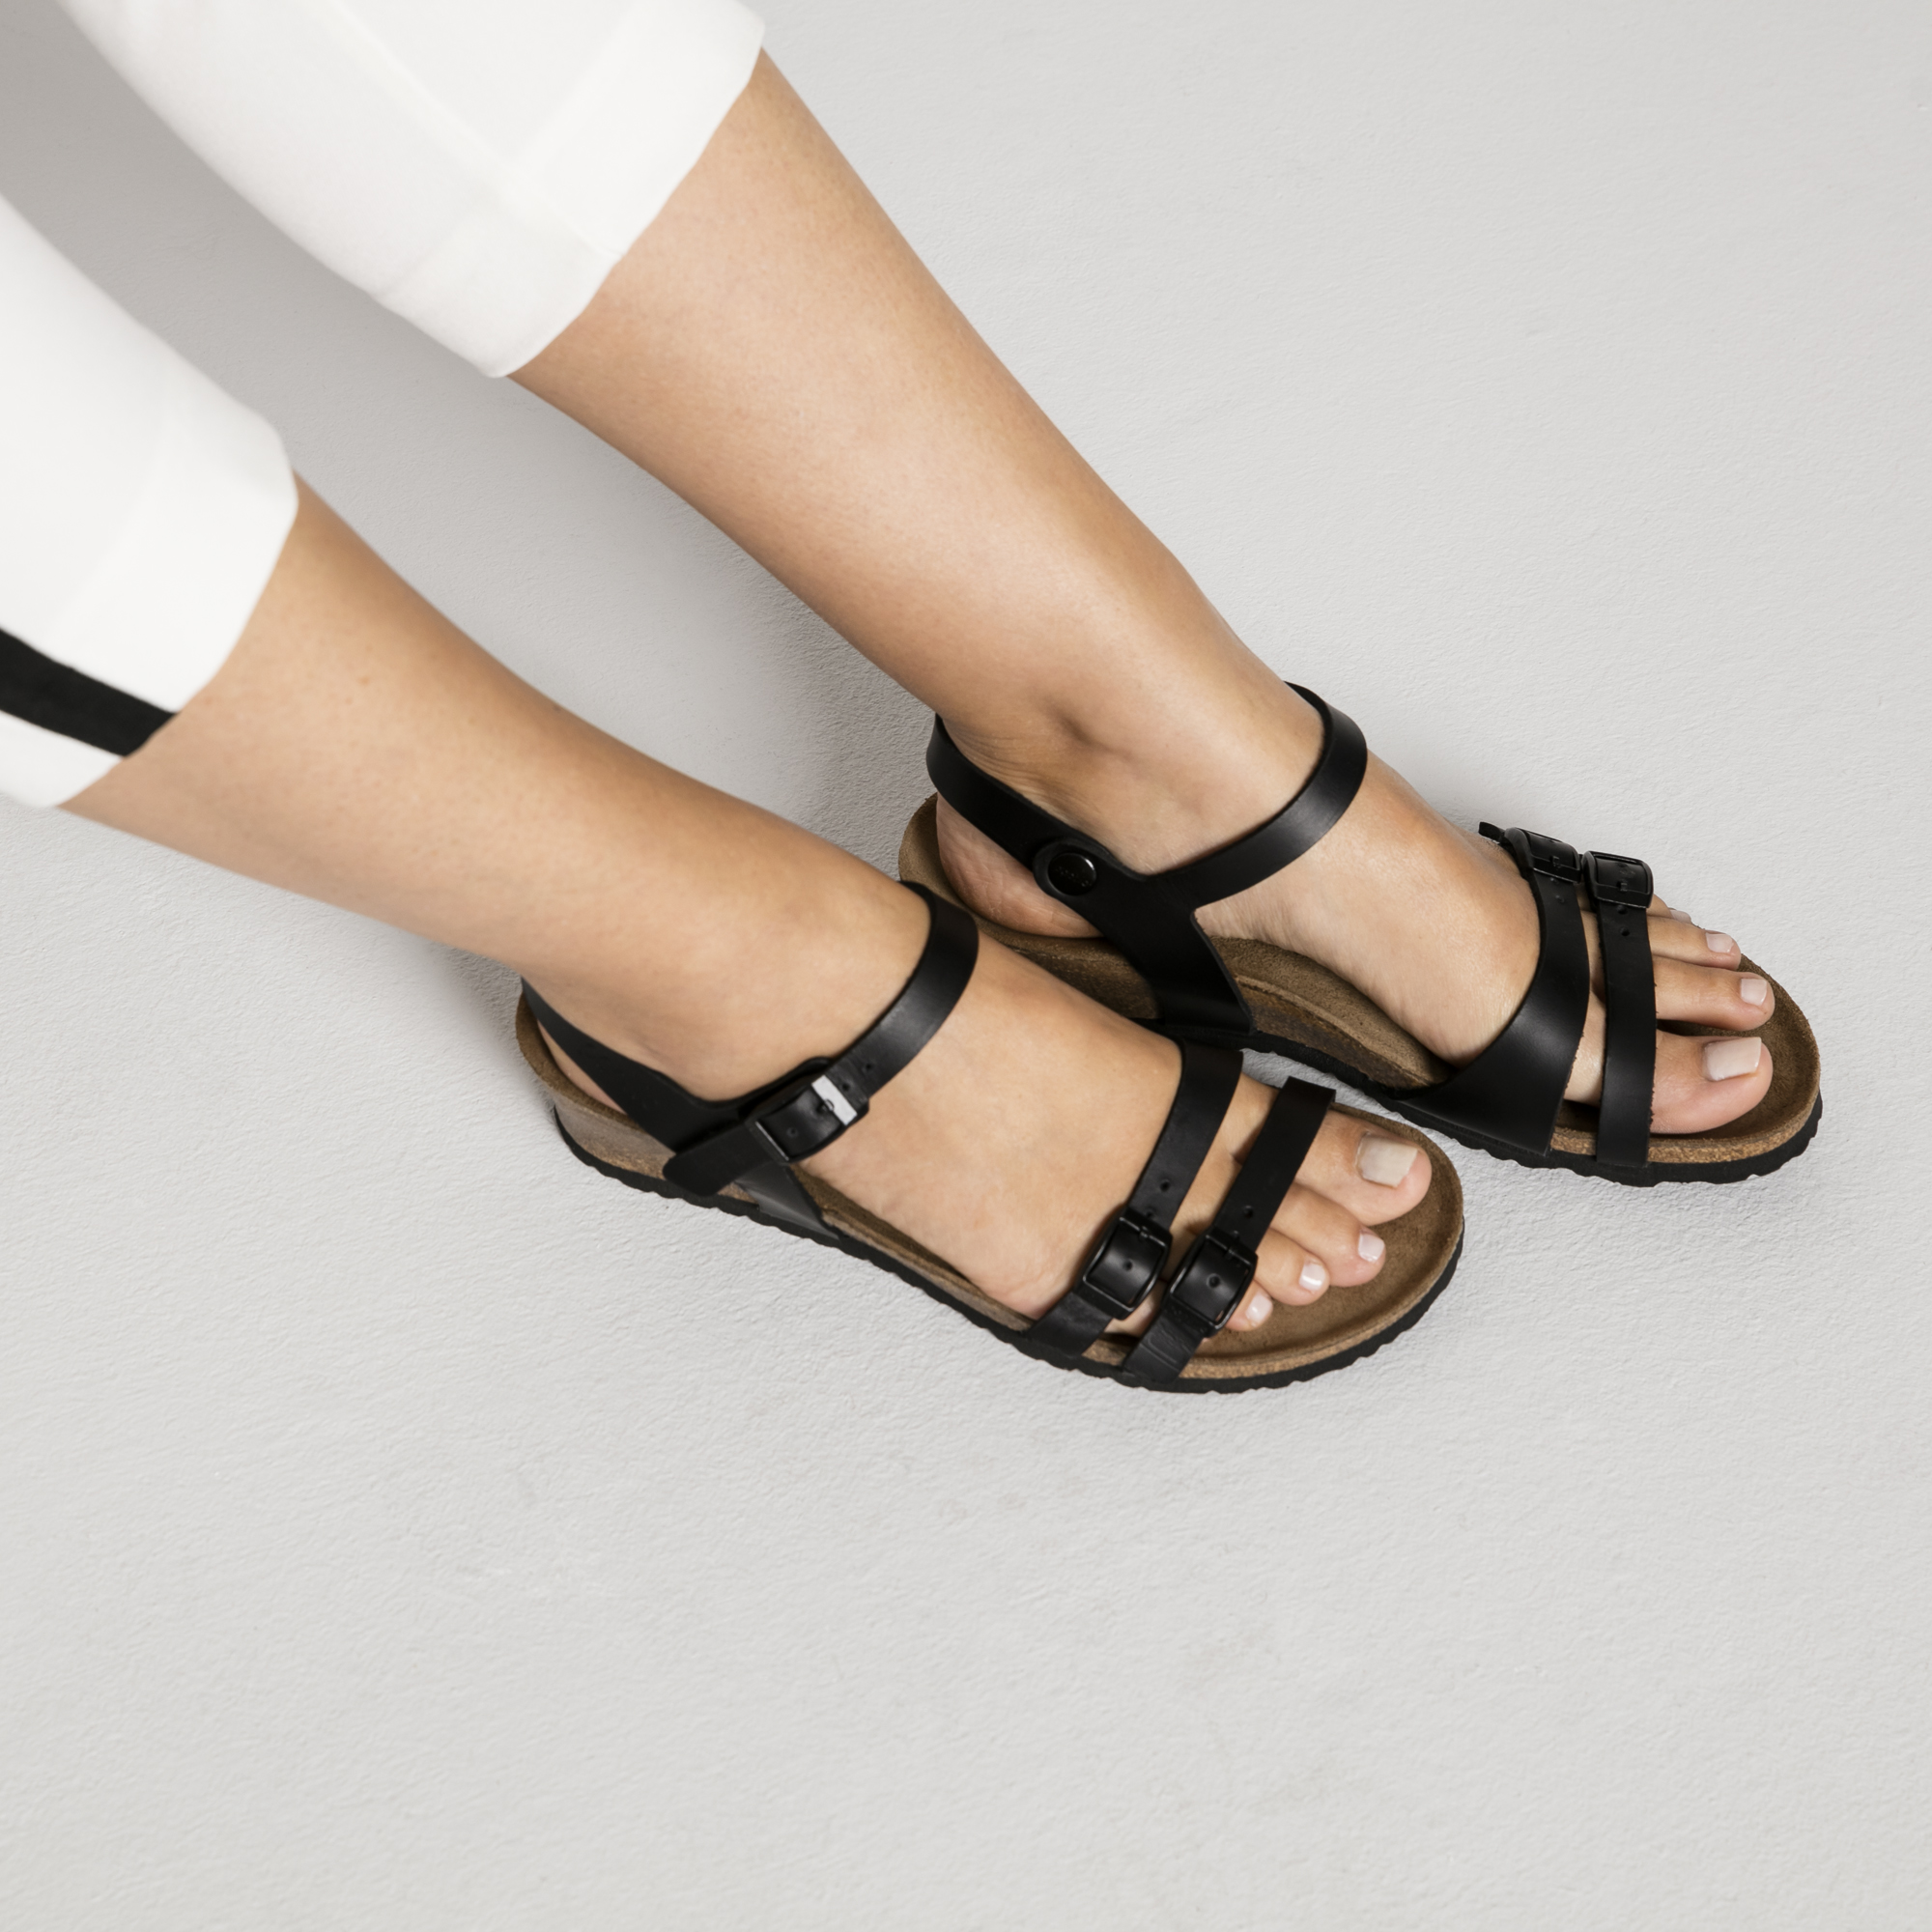 Birkenstock Lana Black Leather Sandal